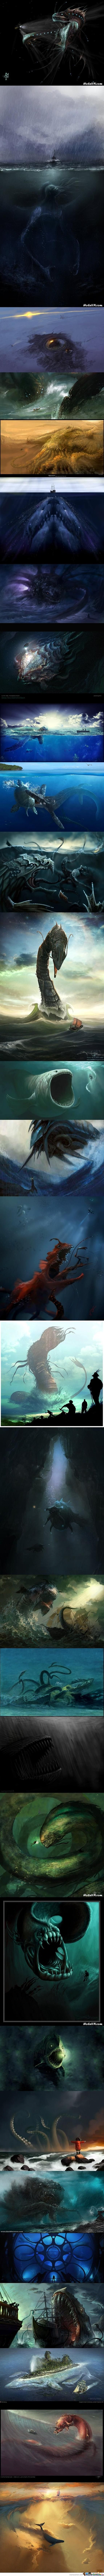 Just Some Sea Monsters...